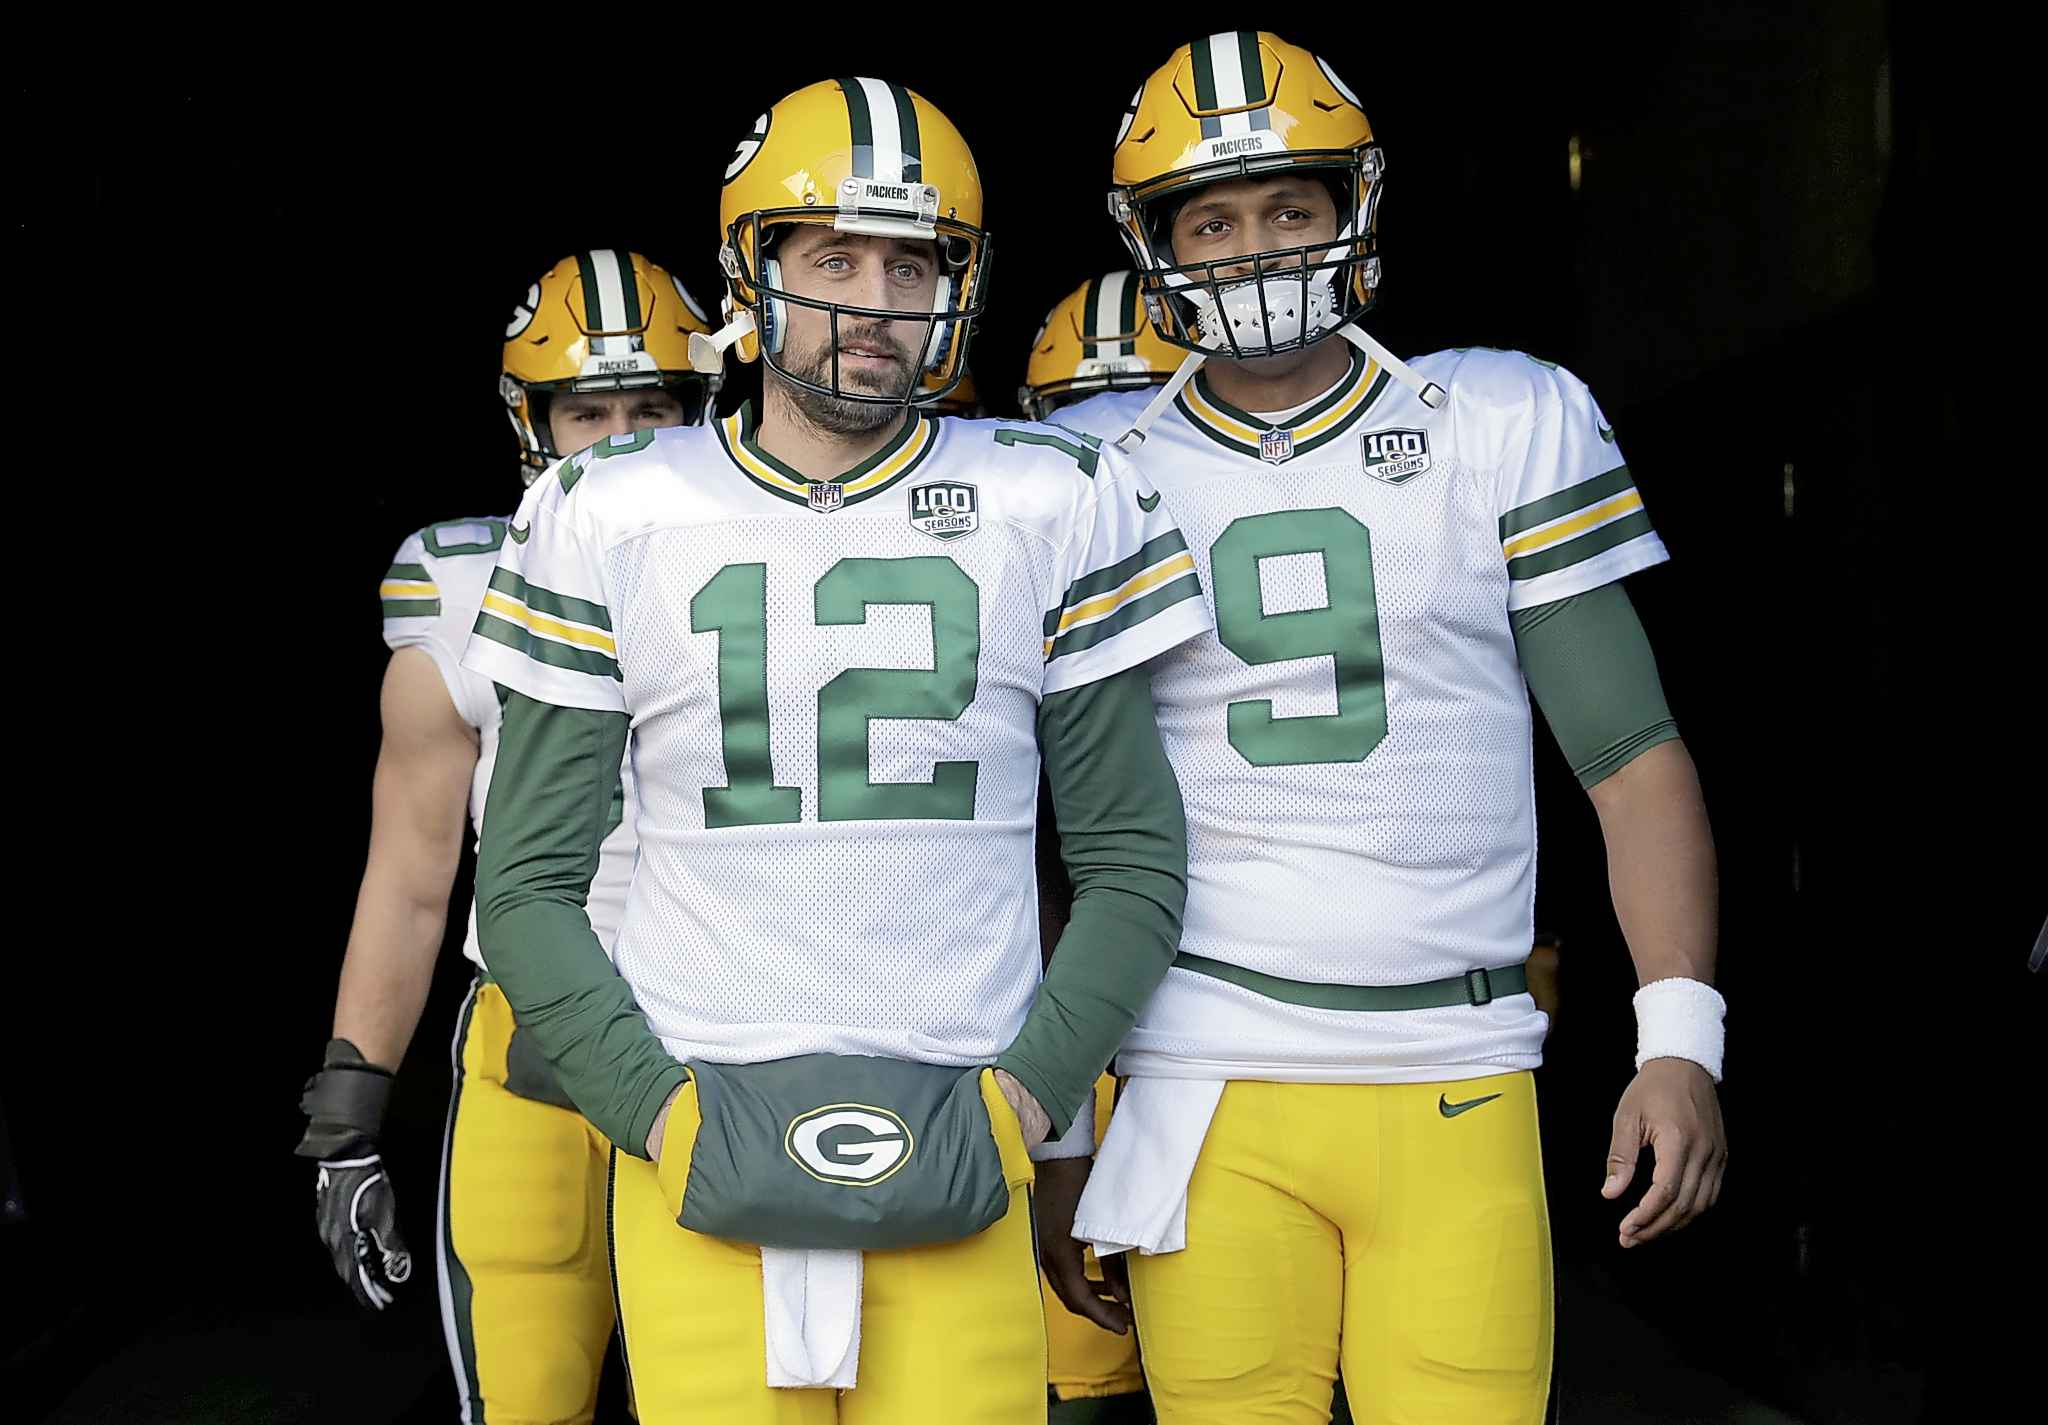 As a Week 3 pre-season NFL game, there's a good chance the teams' regular players, such as Packers quarterback Aaron Rodgers, above, will get some significant playing time.